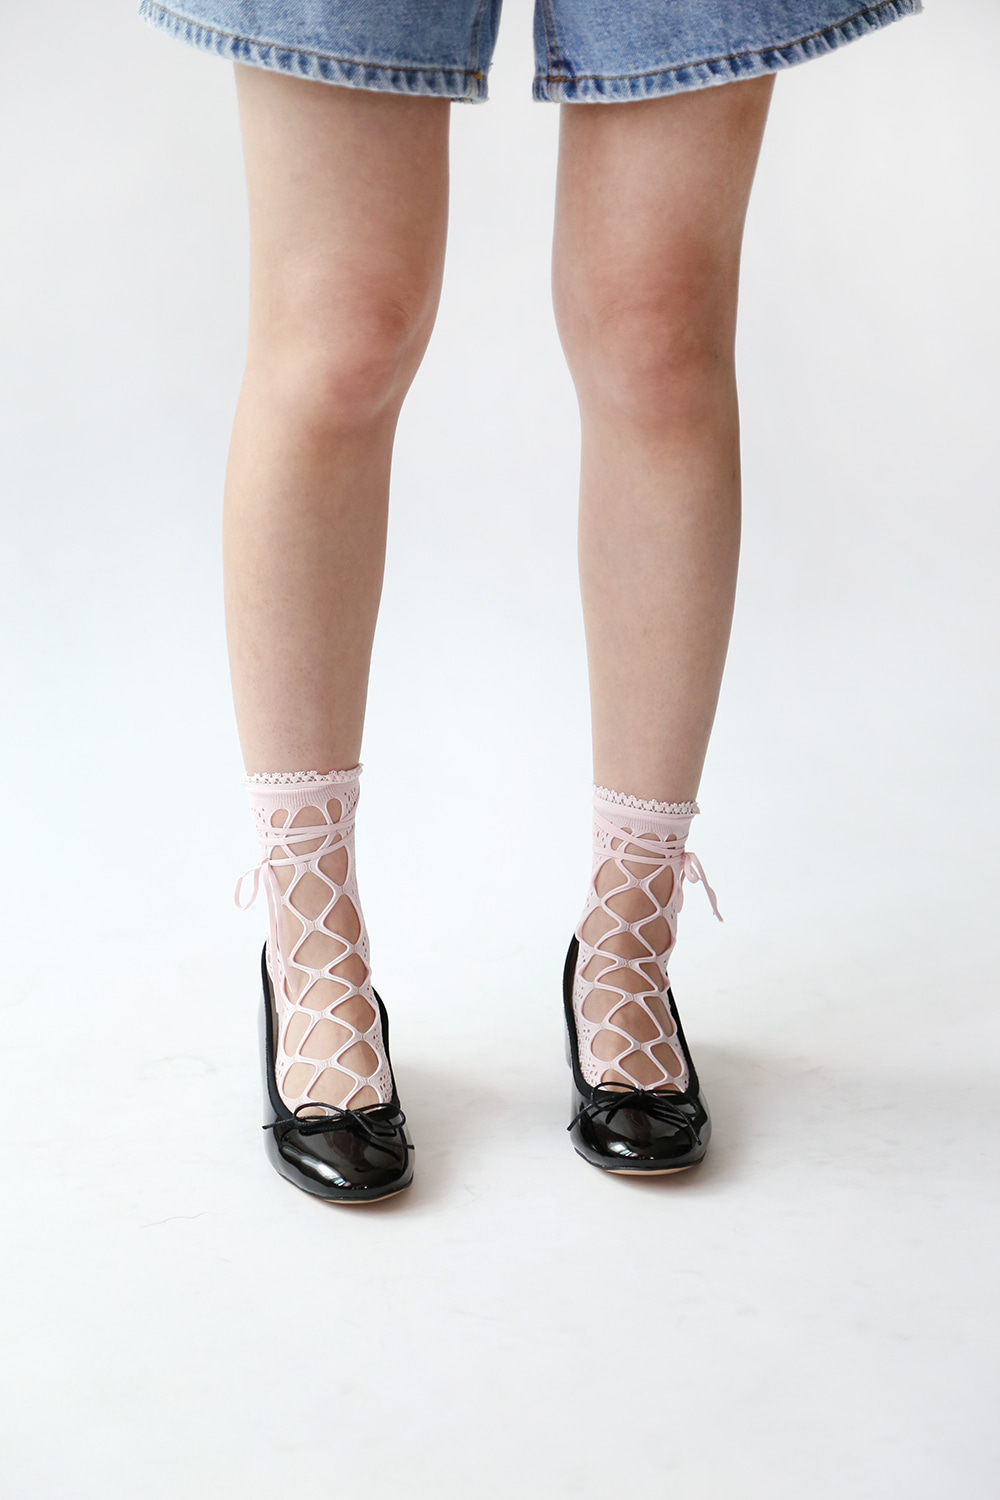 RIBBON LACE SOCKS (4colors!)